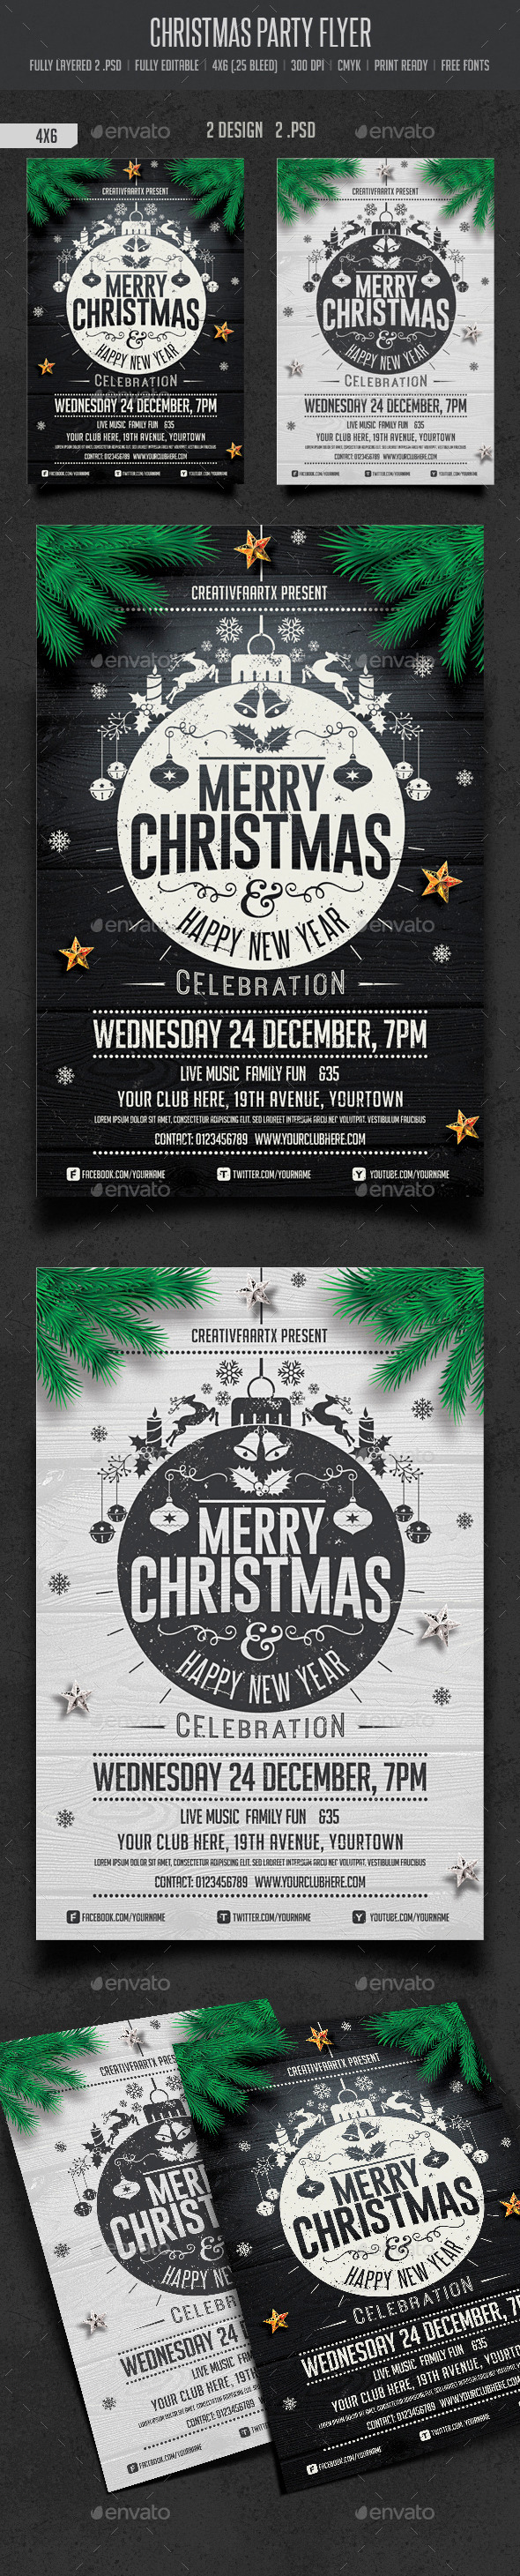 GraphicRiver Christmas Party Flyer 9551250